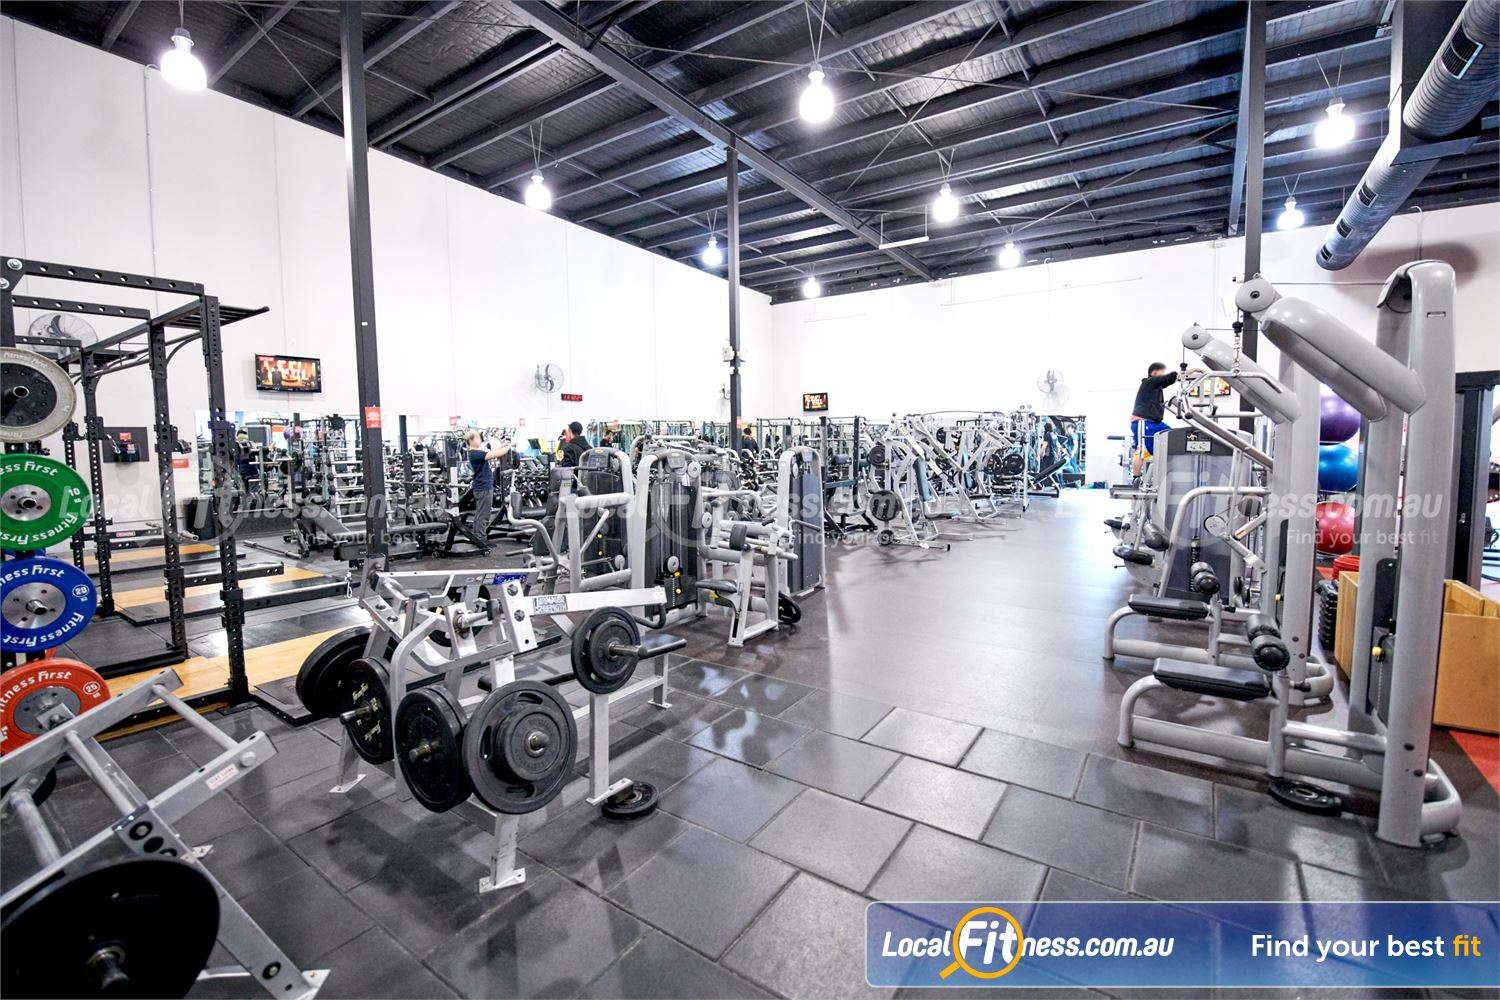 Fitness First Glen Waverley Our 24/7 Glen Waverley gym uses state of the art Life Fitness and Hammer Strength.